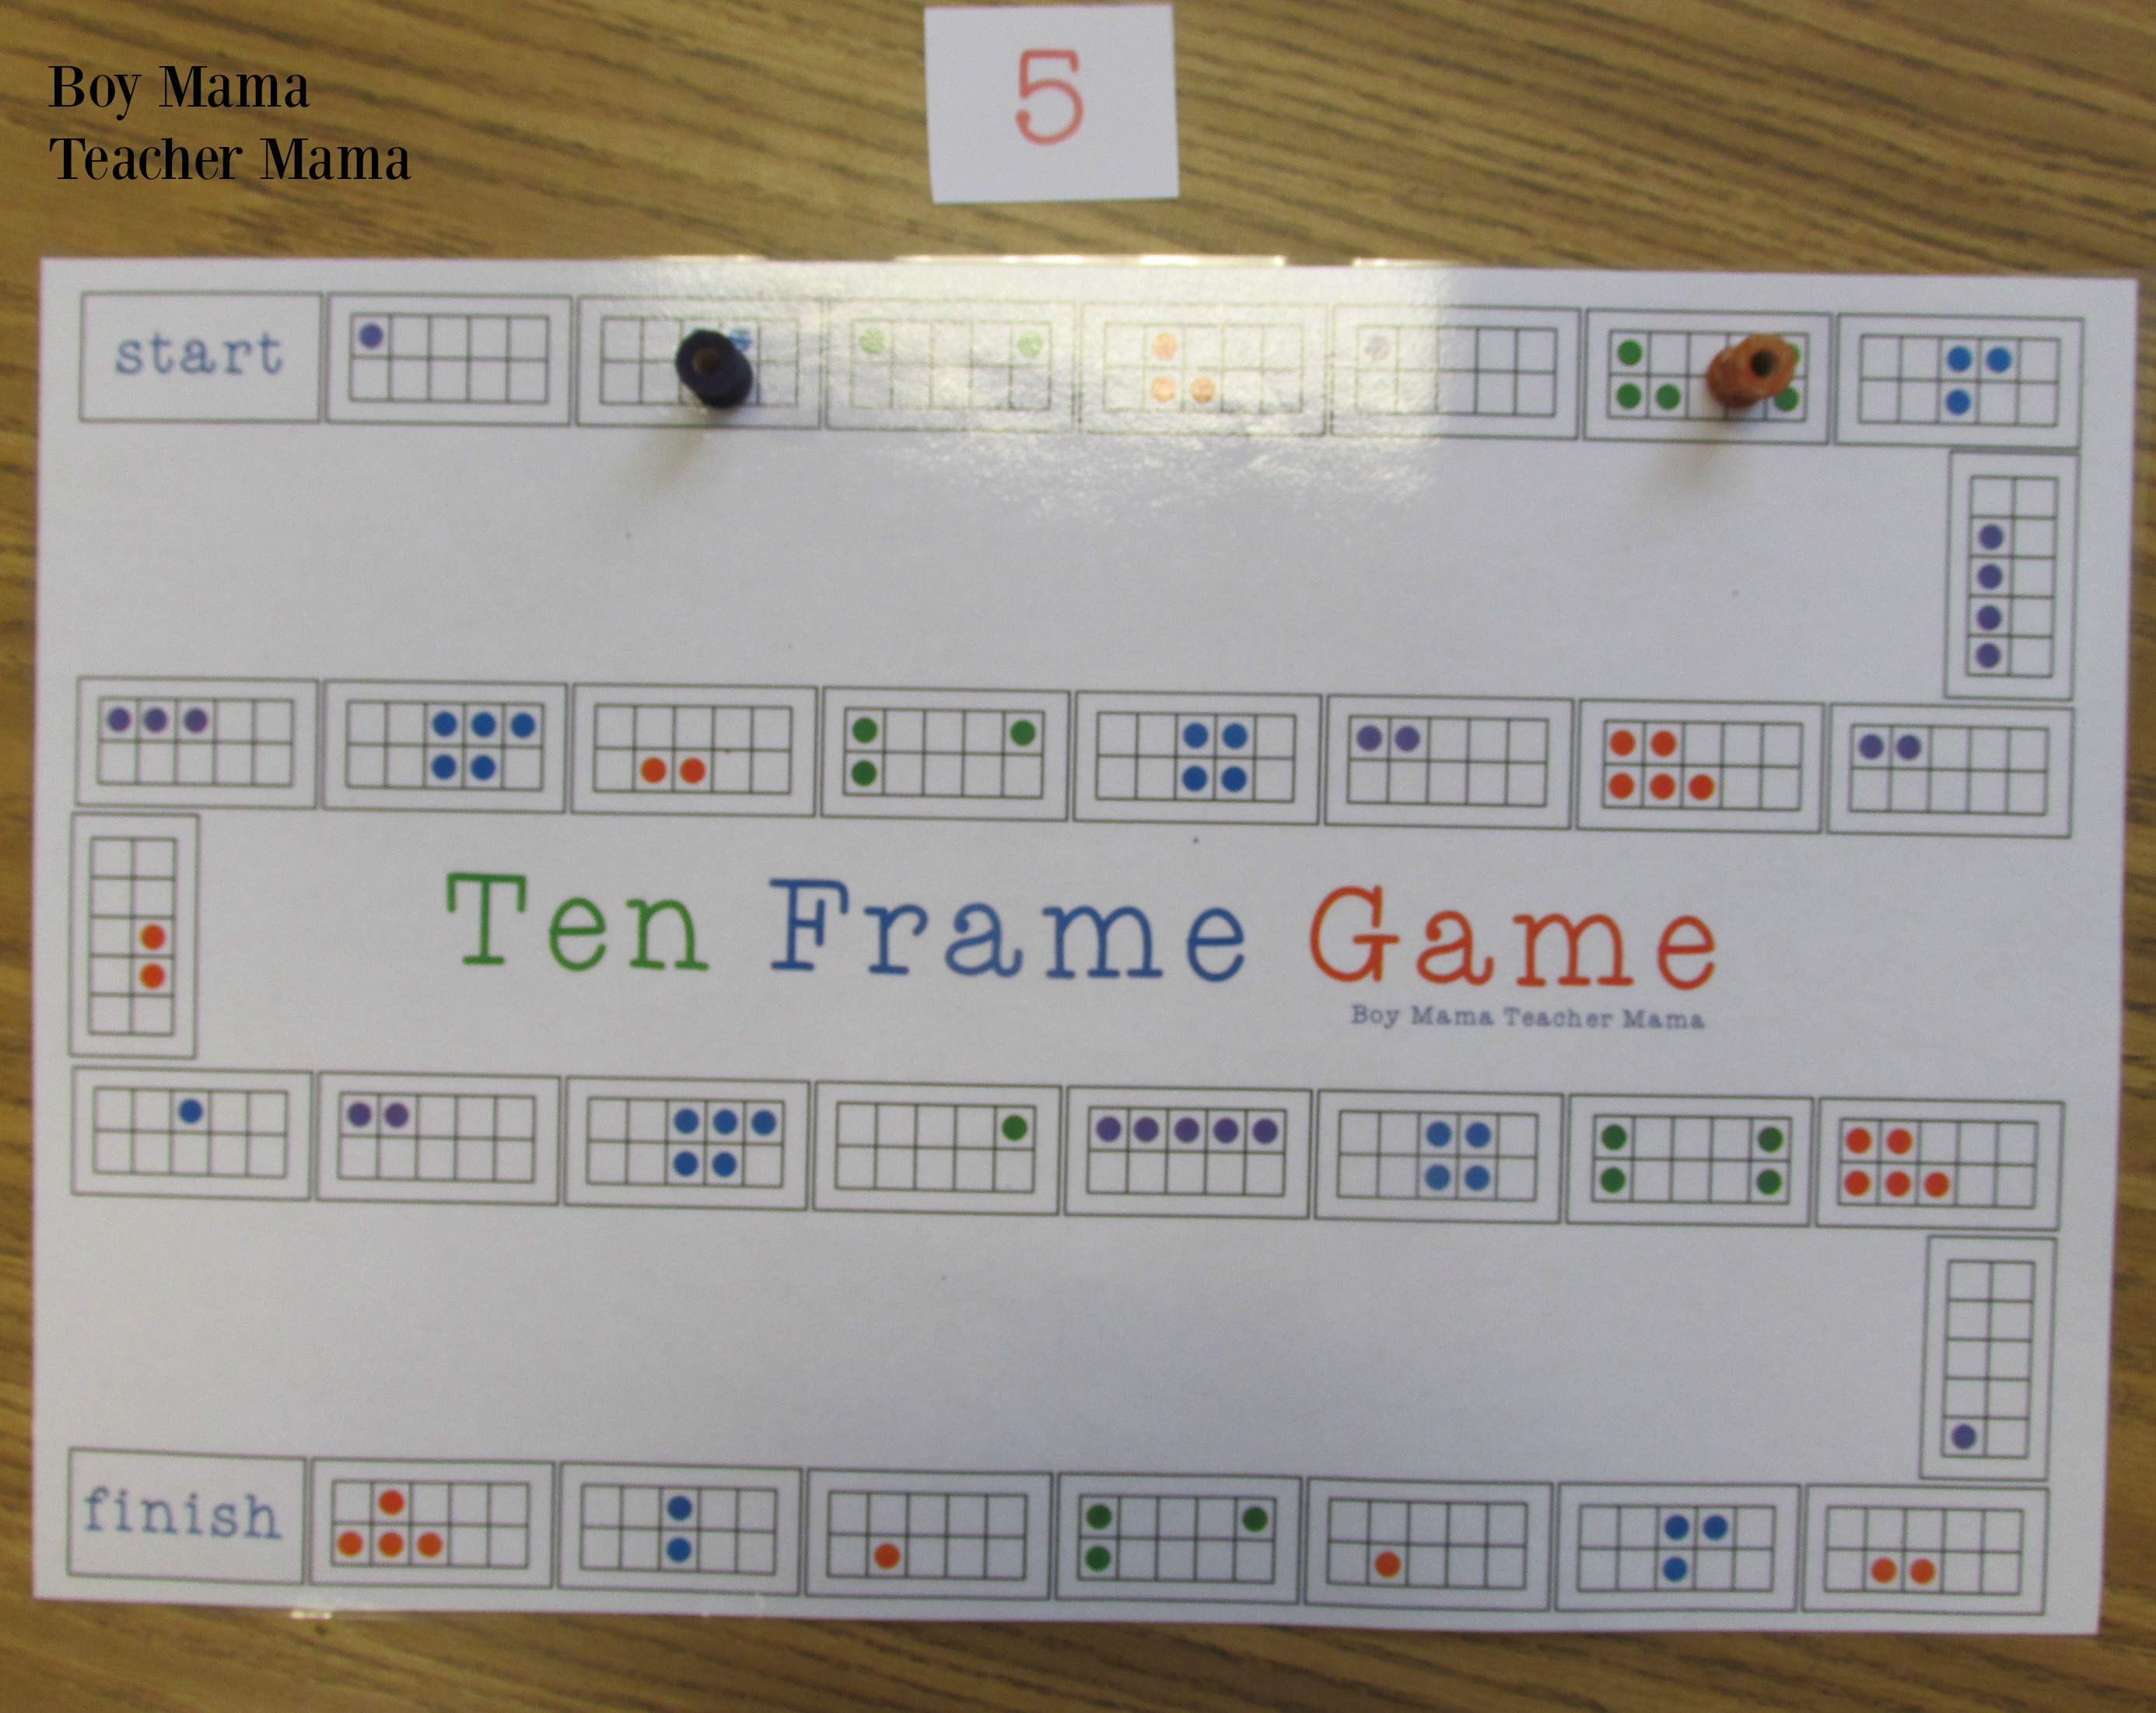 Boy Mama Teacher Mama Ten Frame Game 2